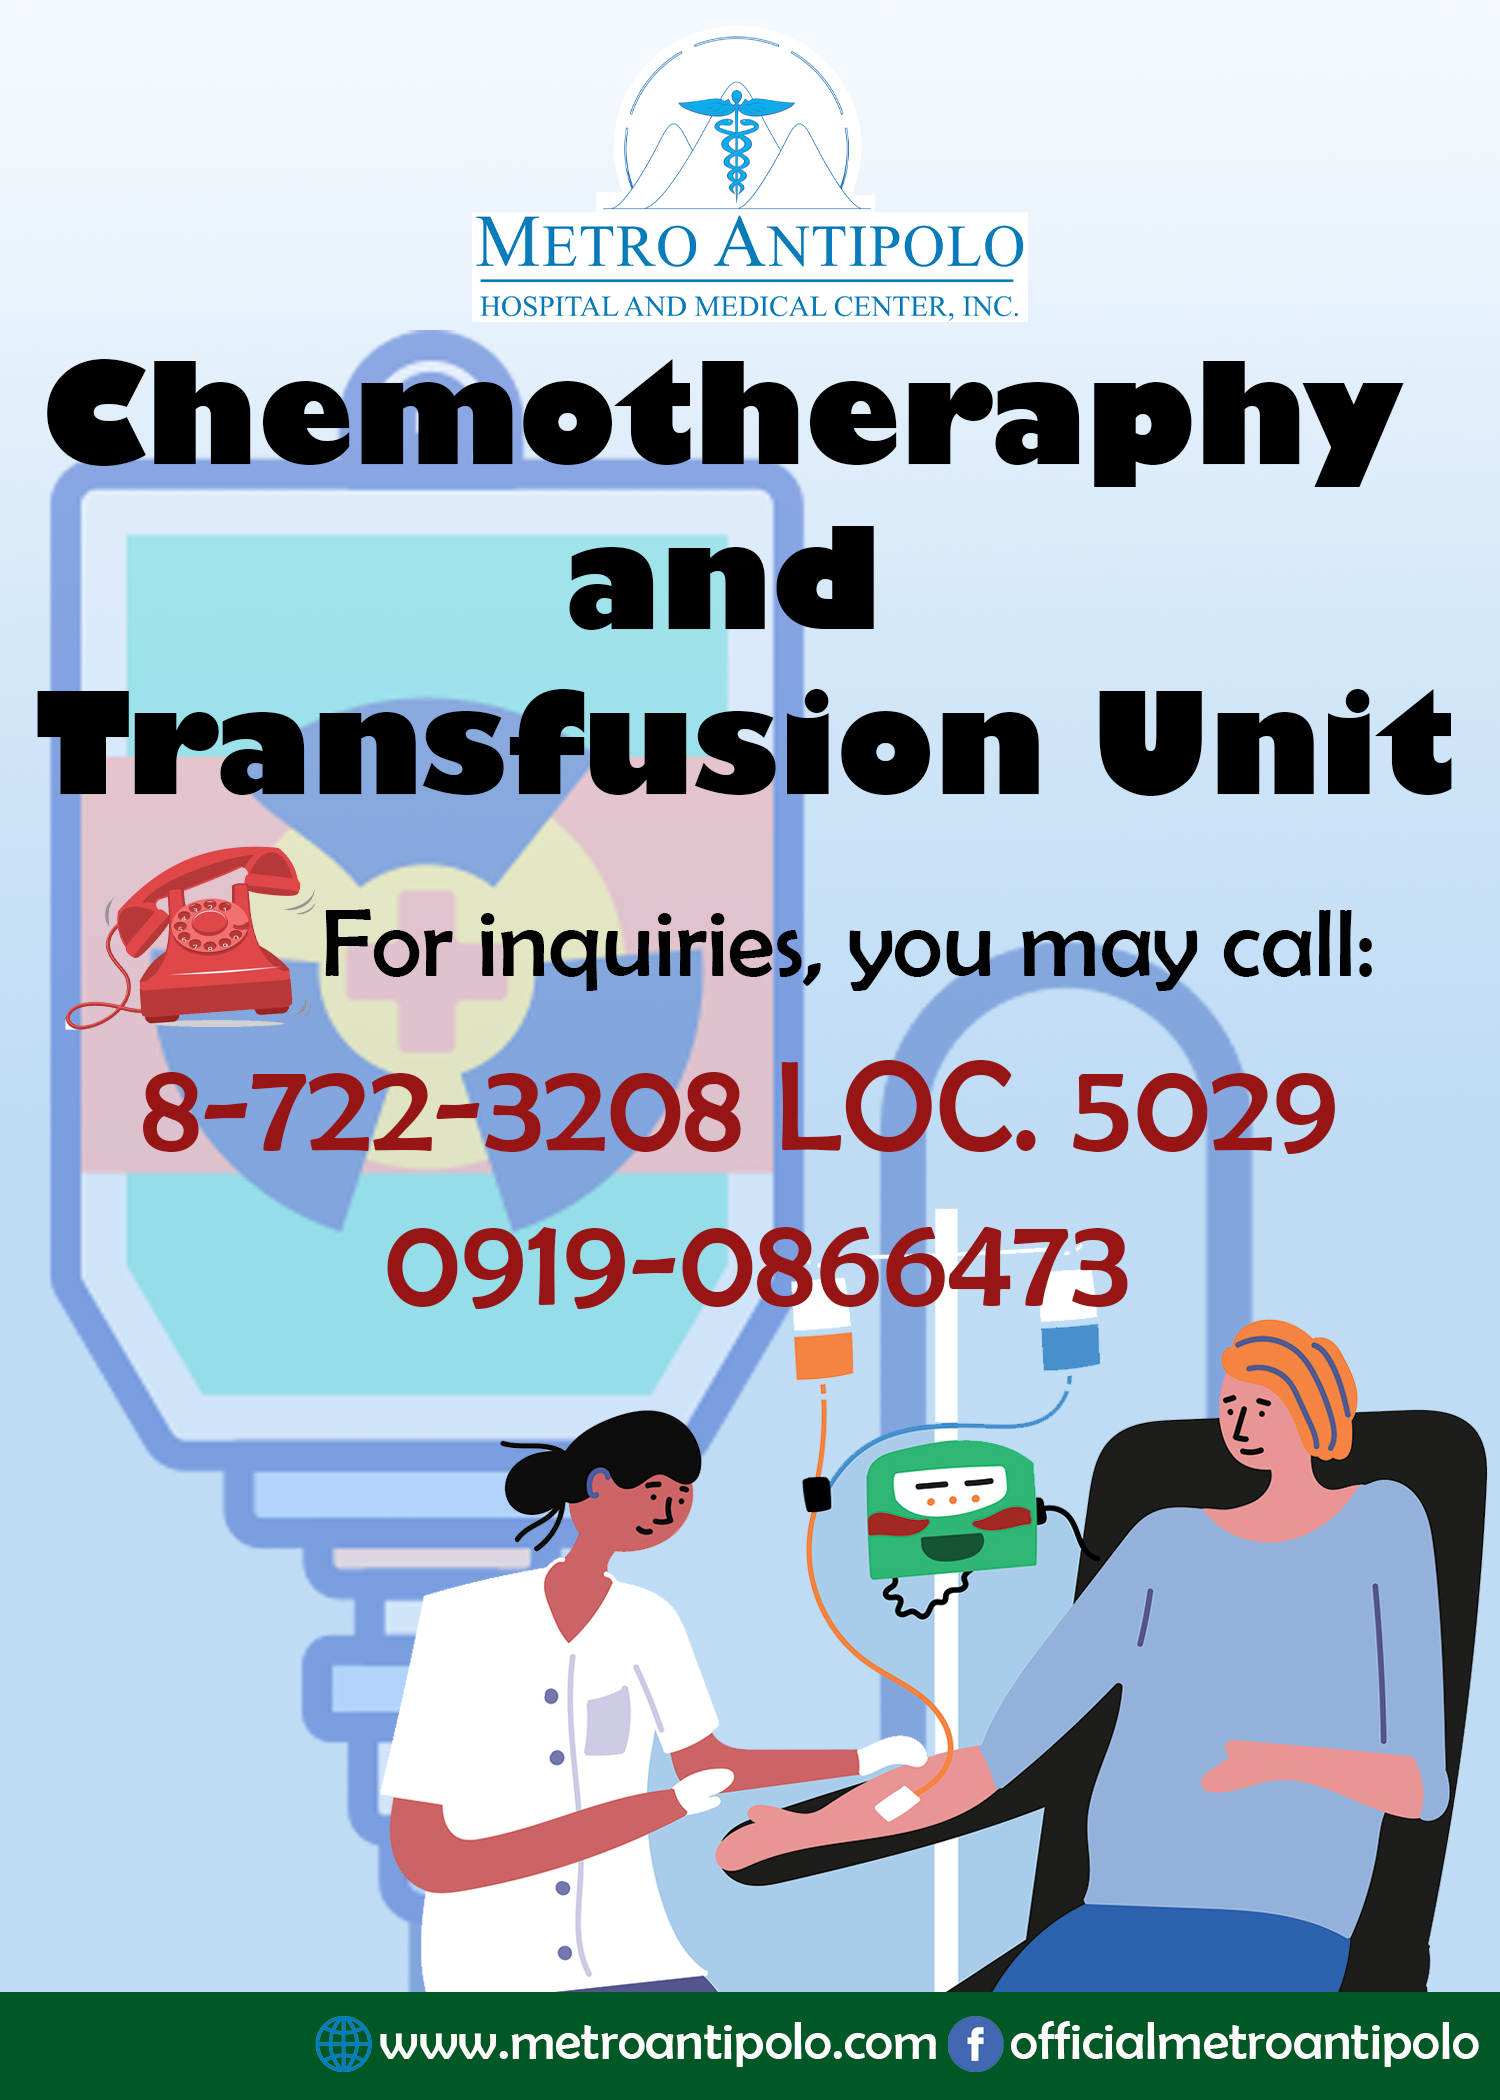 Chemotheraphy and Transfusion Unit